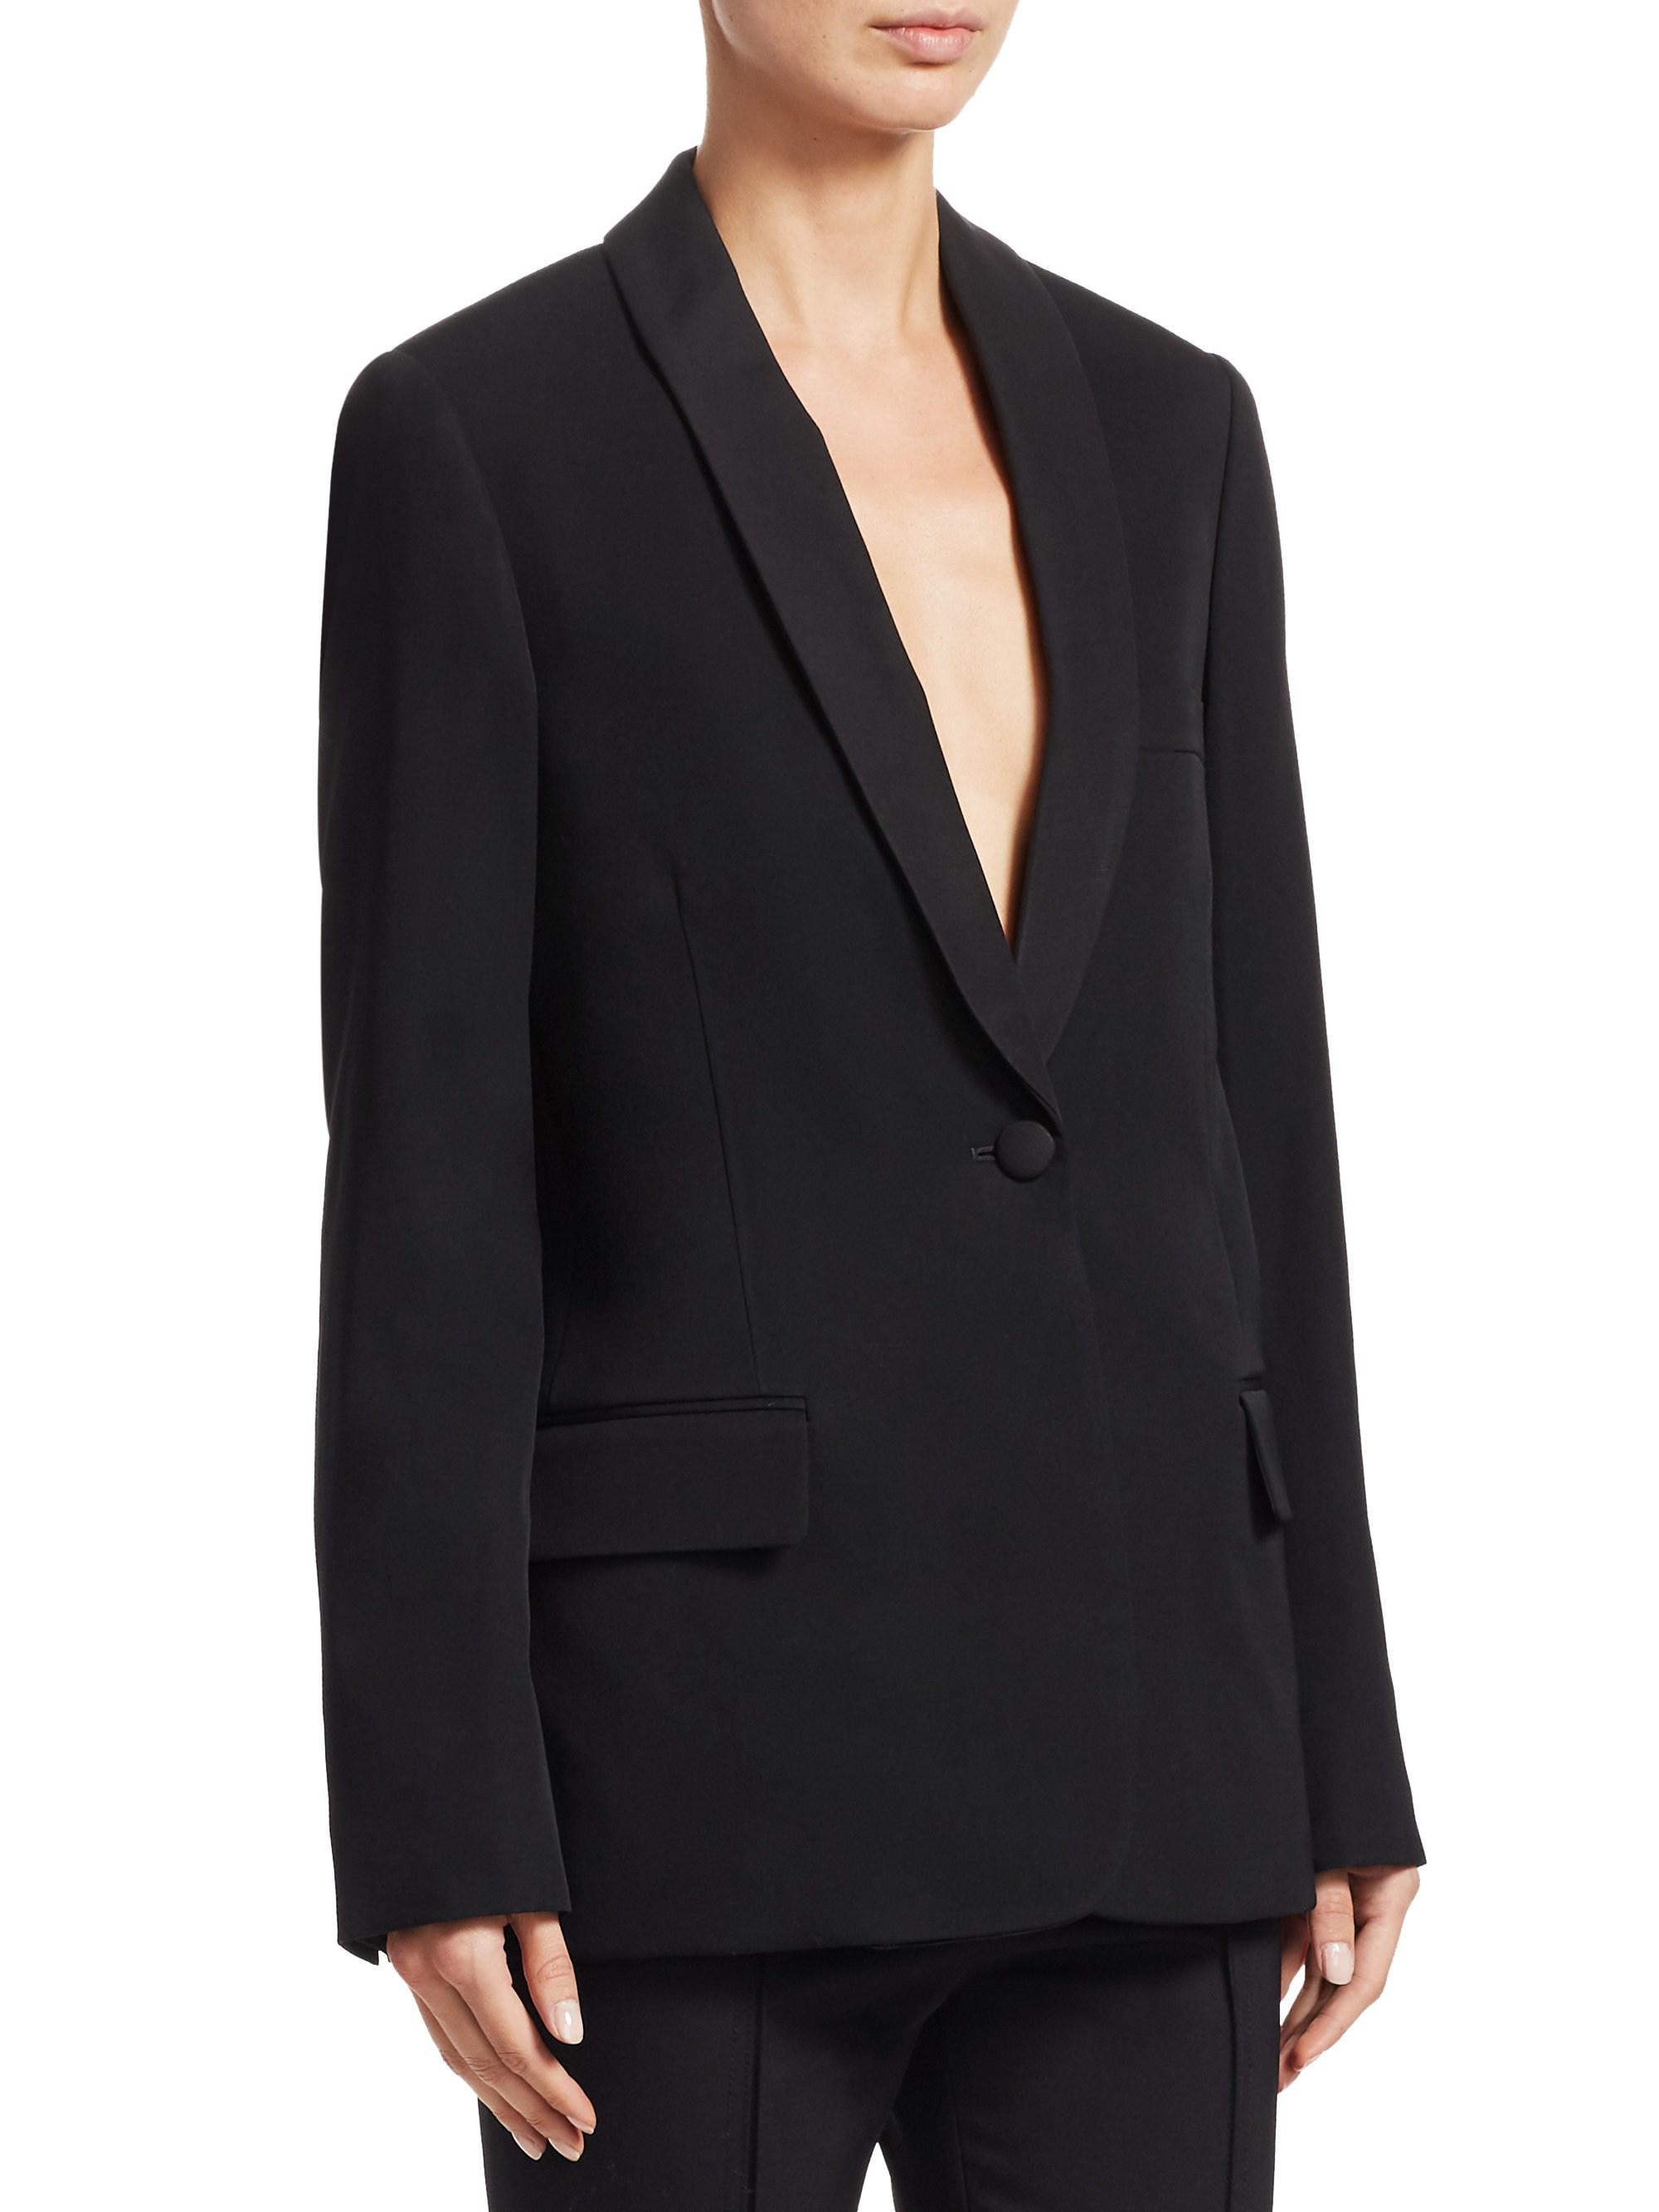 a4273bf5e525 Lyst - Stella Mccartney Grosgrain Tie One-button Wool Blazer in Black